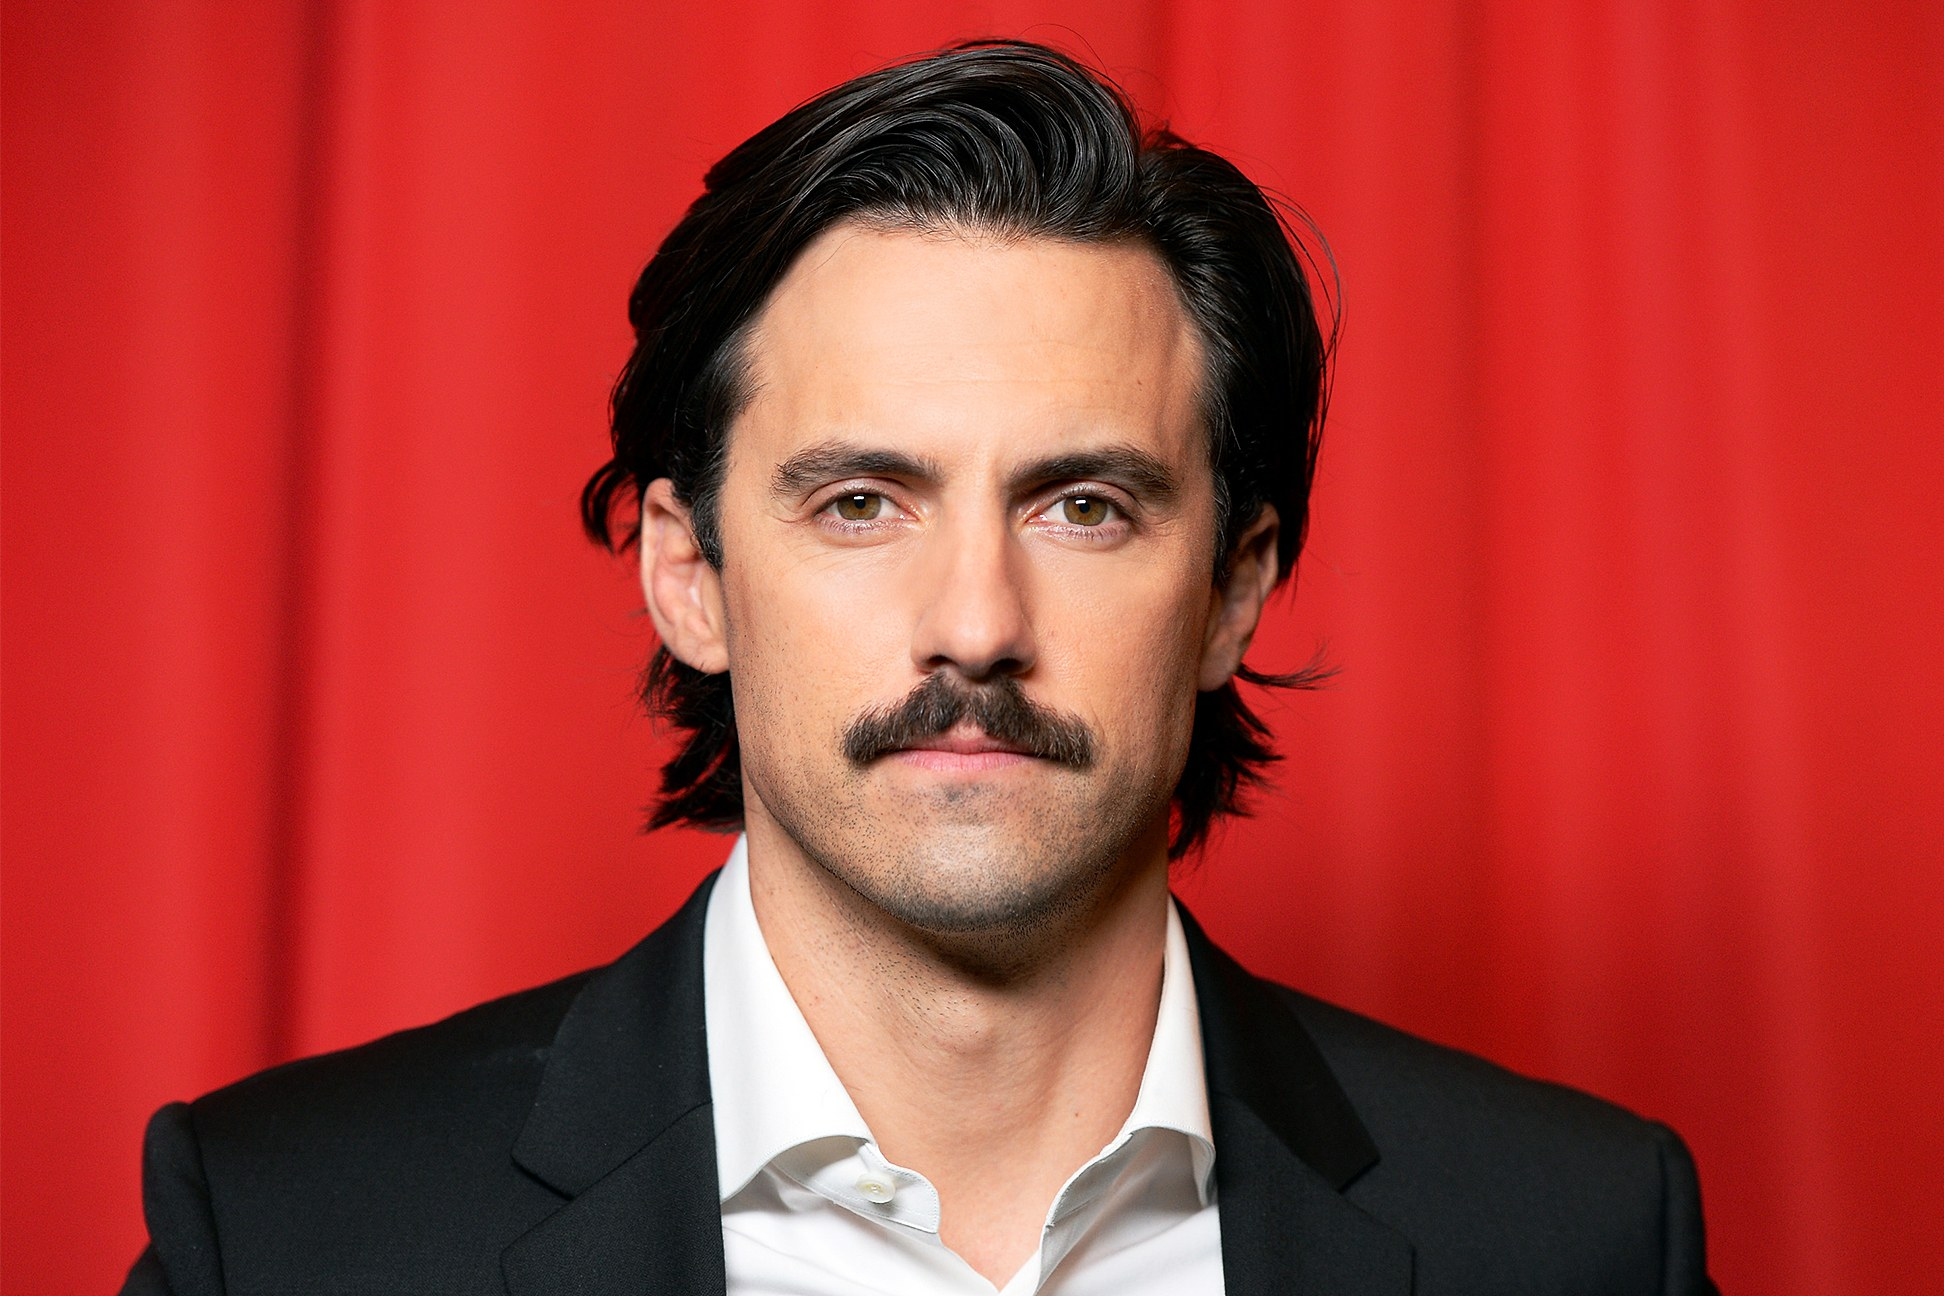 bearded celebrities milo ventimiglia